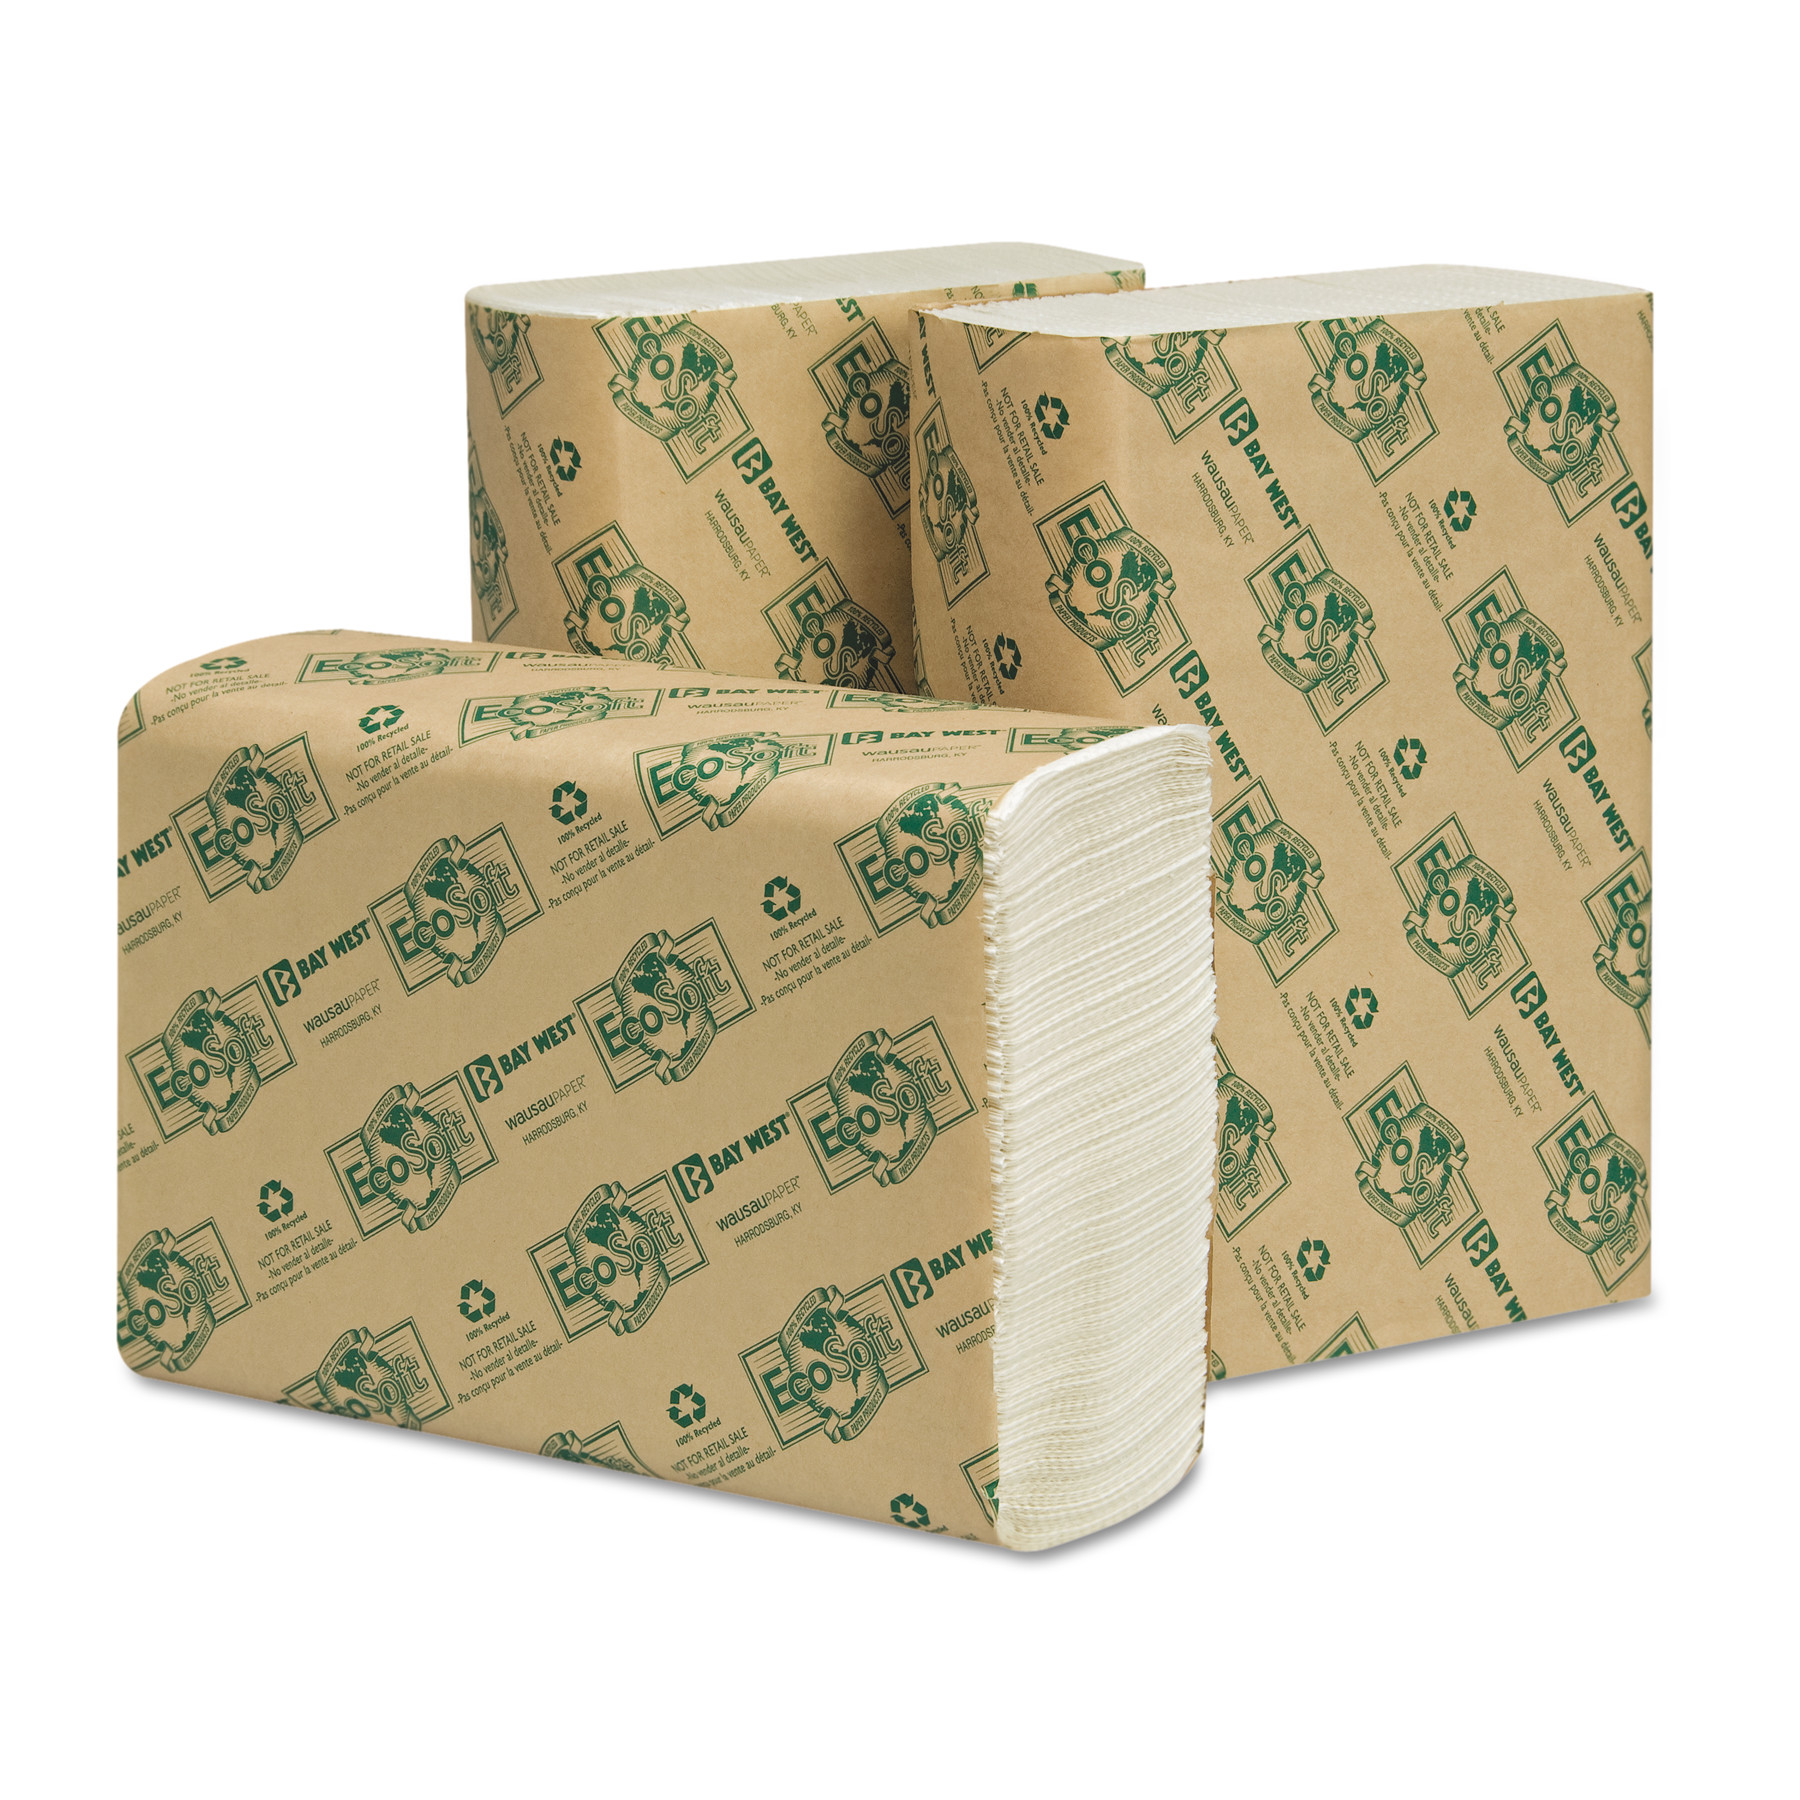 Wausau Paper Eco-Soft Multi-Fold Paper Towels, 250 count, (Pack of 16)